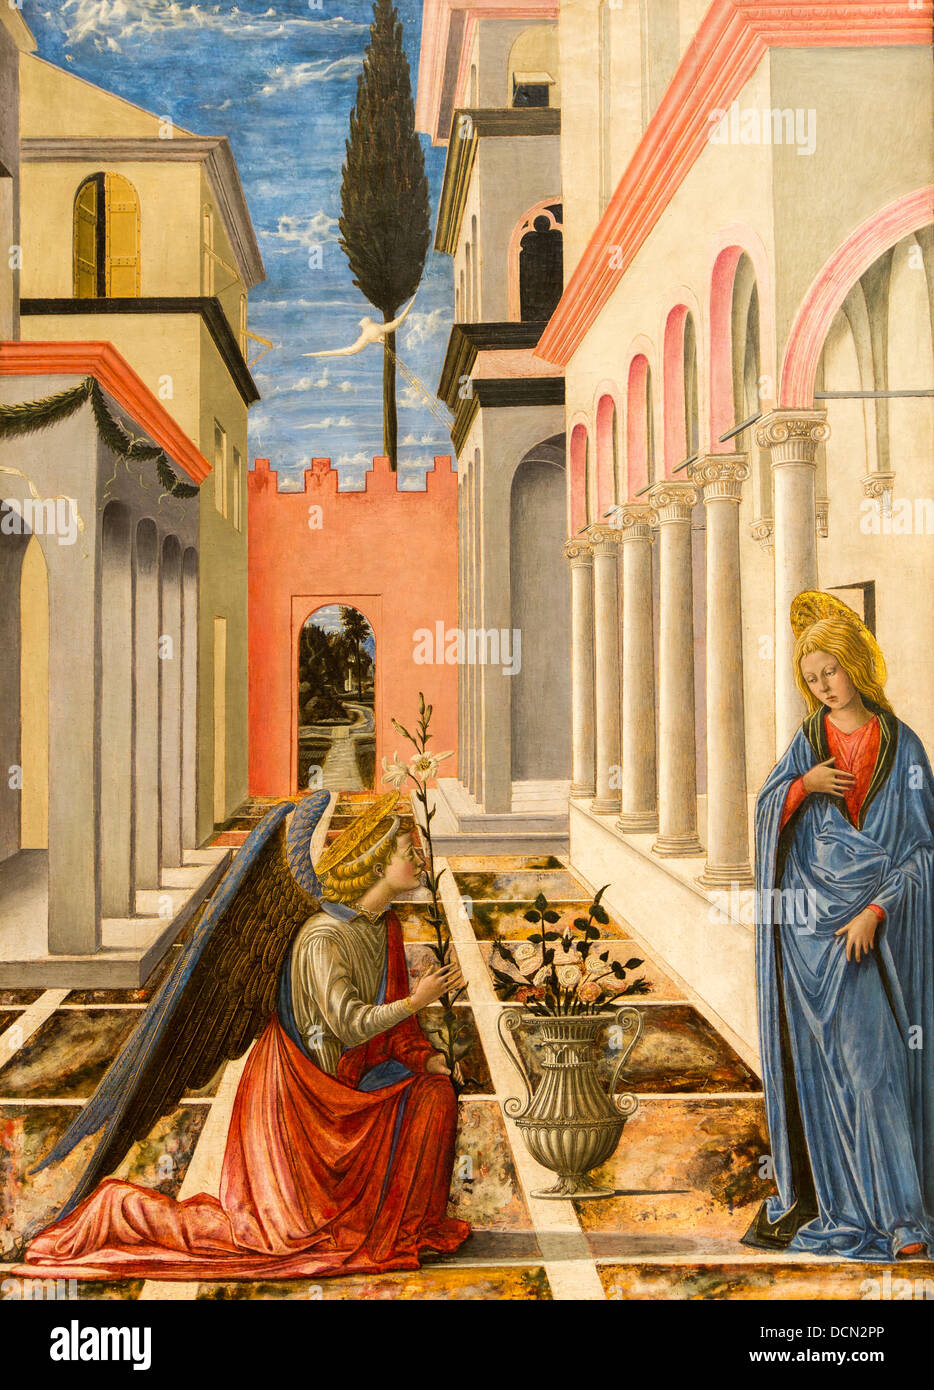 15th century  -  The Annonciation, 1445 - Fra Carnevale Philippe Sauvan-Magnet / Active Museum - Stock Image